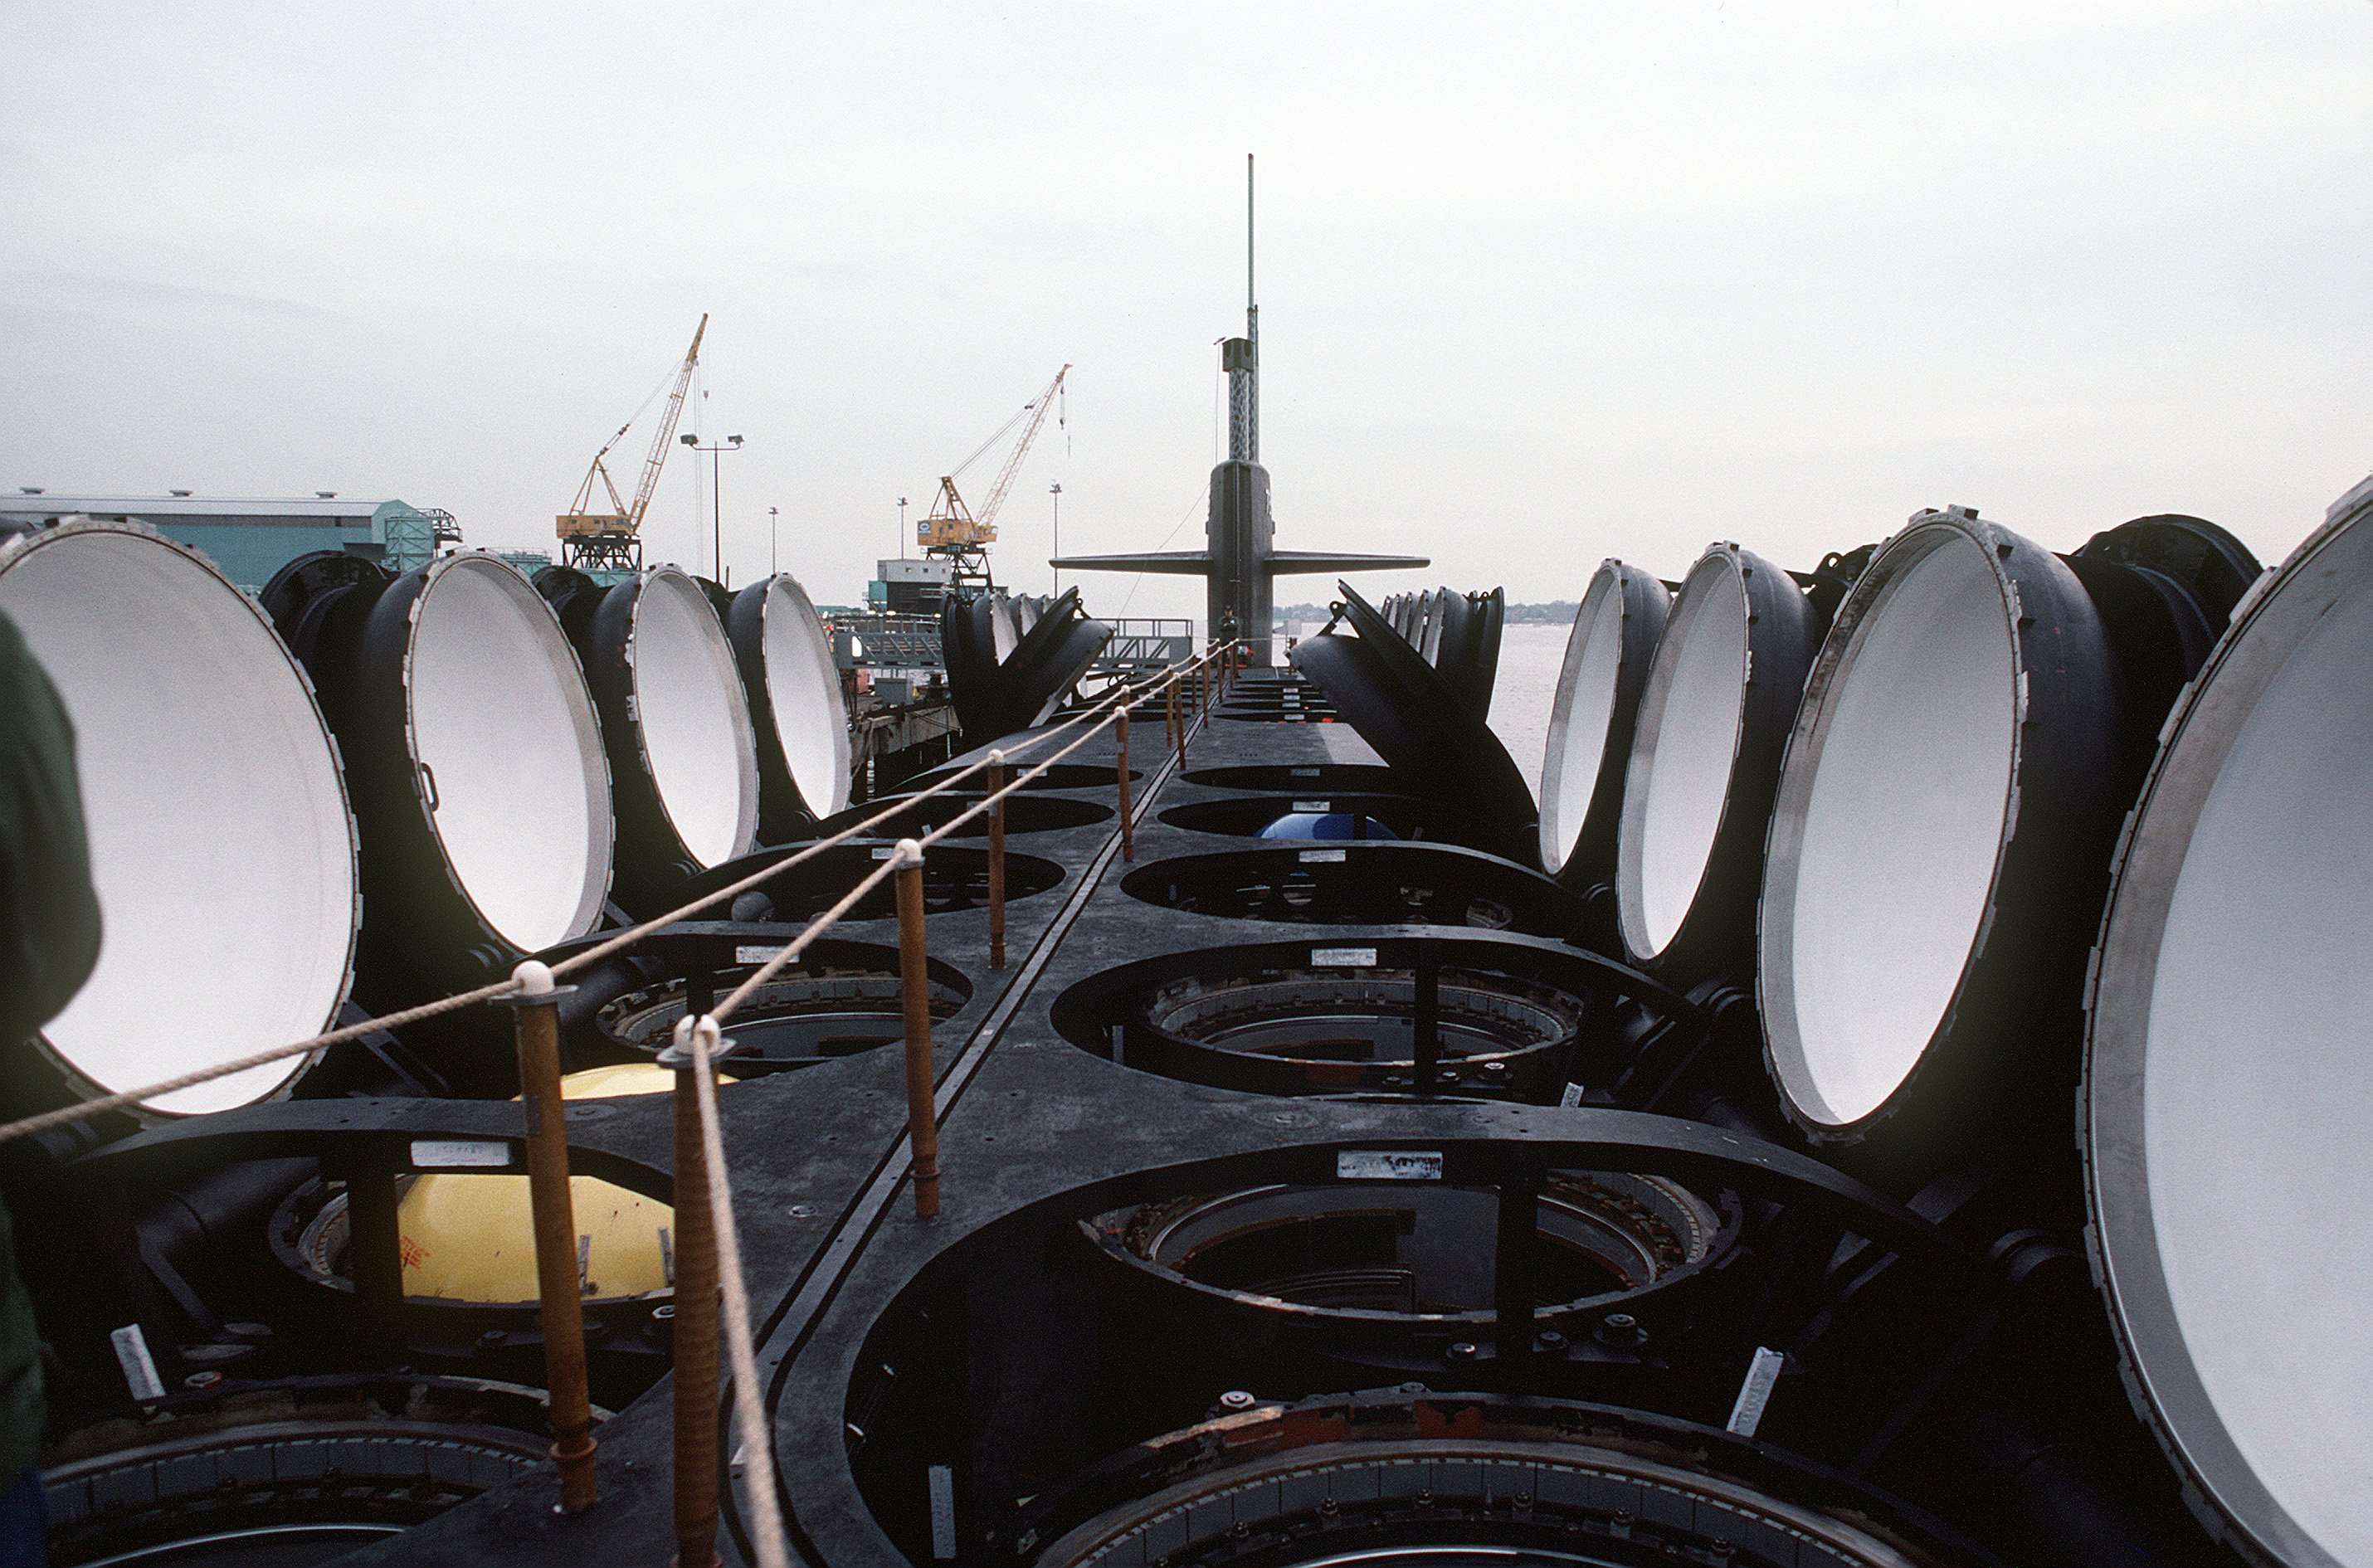 A deck view, looking toward the bow, of the nuclear-powered ballistic missile submarine OHIO (SSBN-726) with its missile tubes opened during precommissioning activities. The submarine, built by General Dynamics Corp., carries Trident C-4 (UGM-96) submarine-launched ballistic missiles.